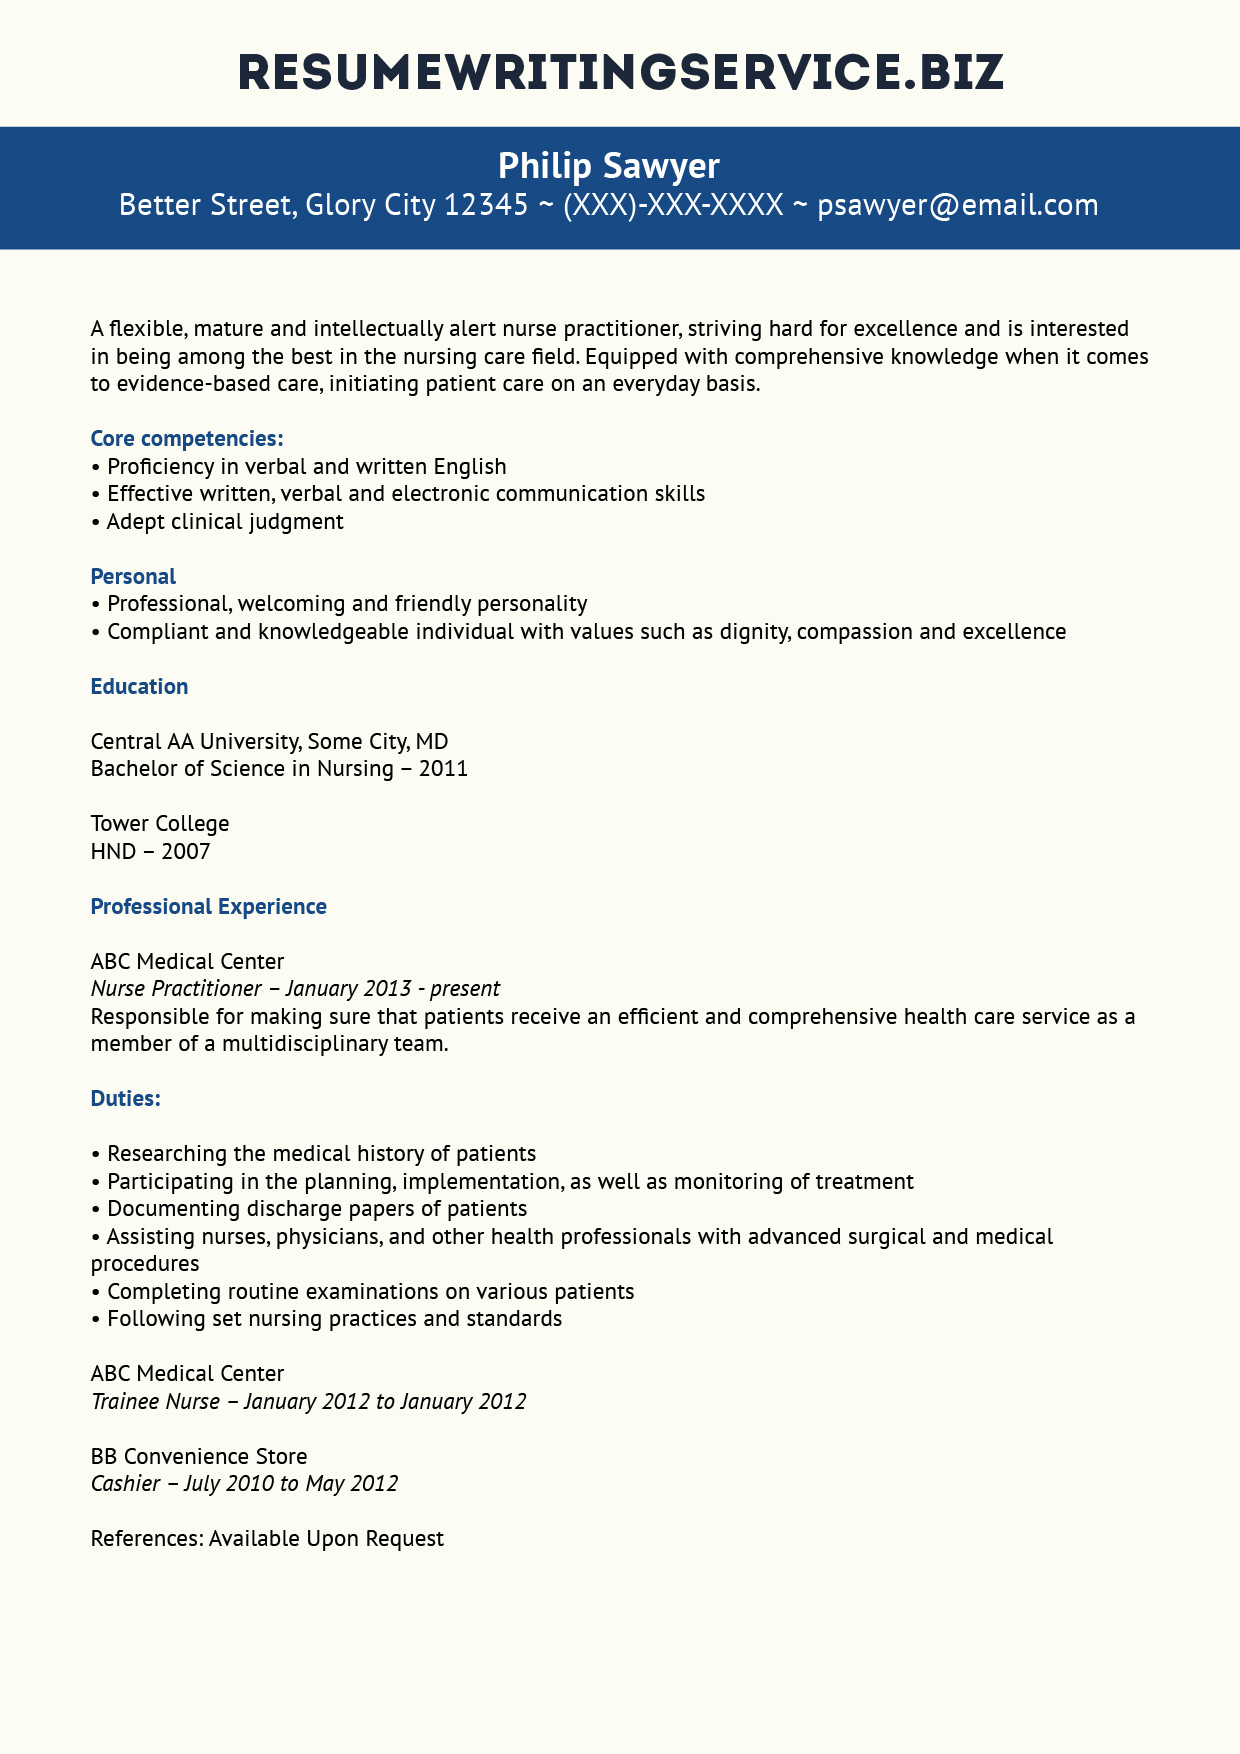 Resume format for mca freshers download essays on specialty coffee new grad nurse resume new grad registered nurse cover letter sample resume free resume templates madrichimfo Gallery